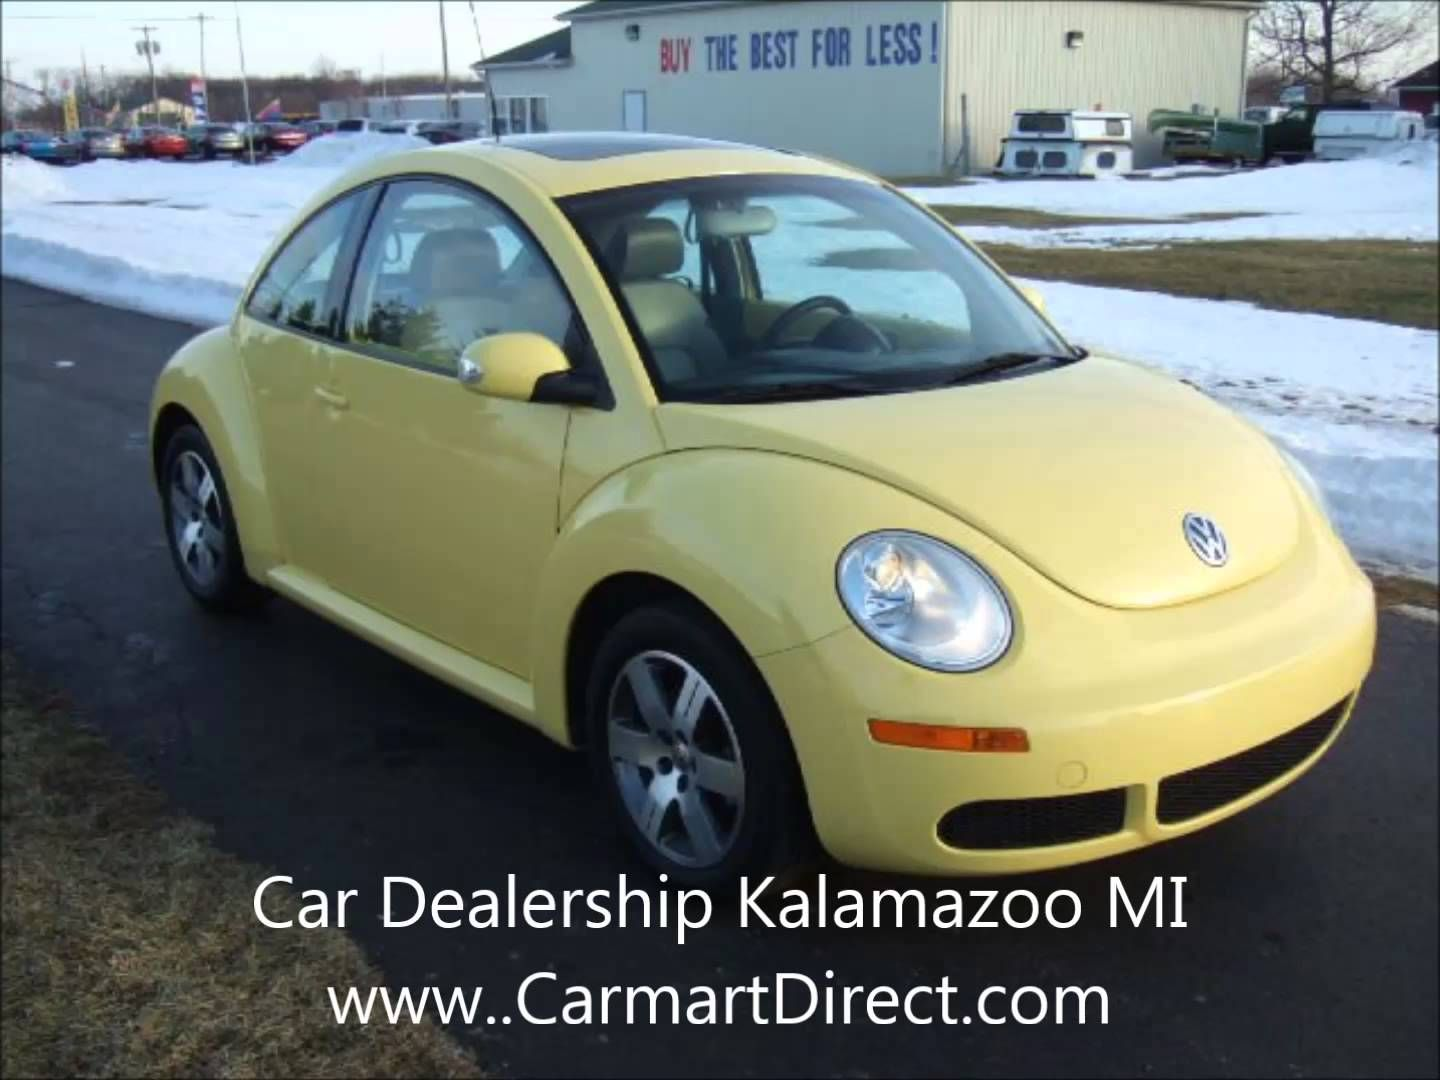 Car Dealerships In Kalamazoo Mi For Some Of The Best Used Ford